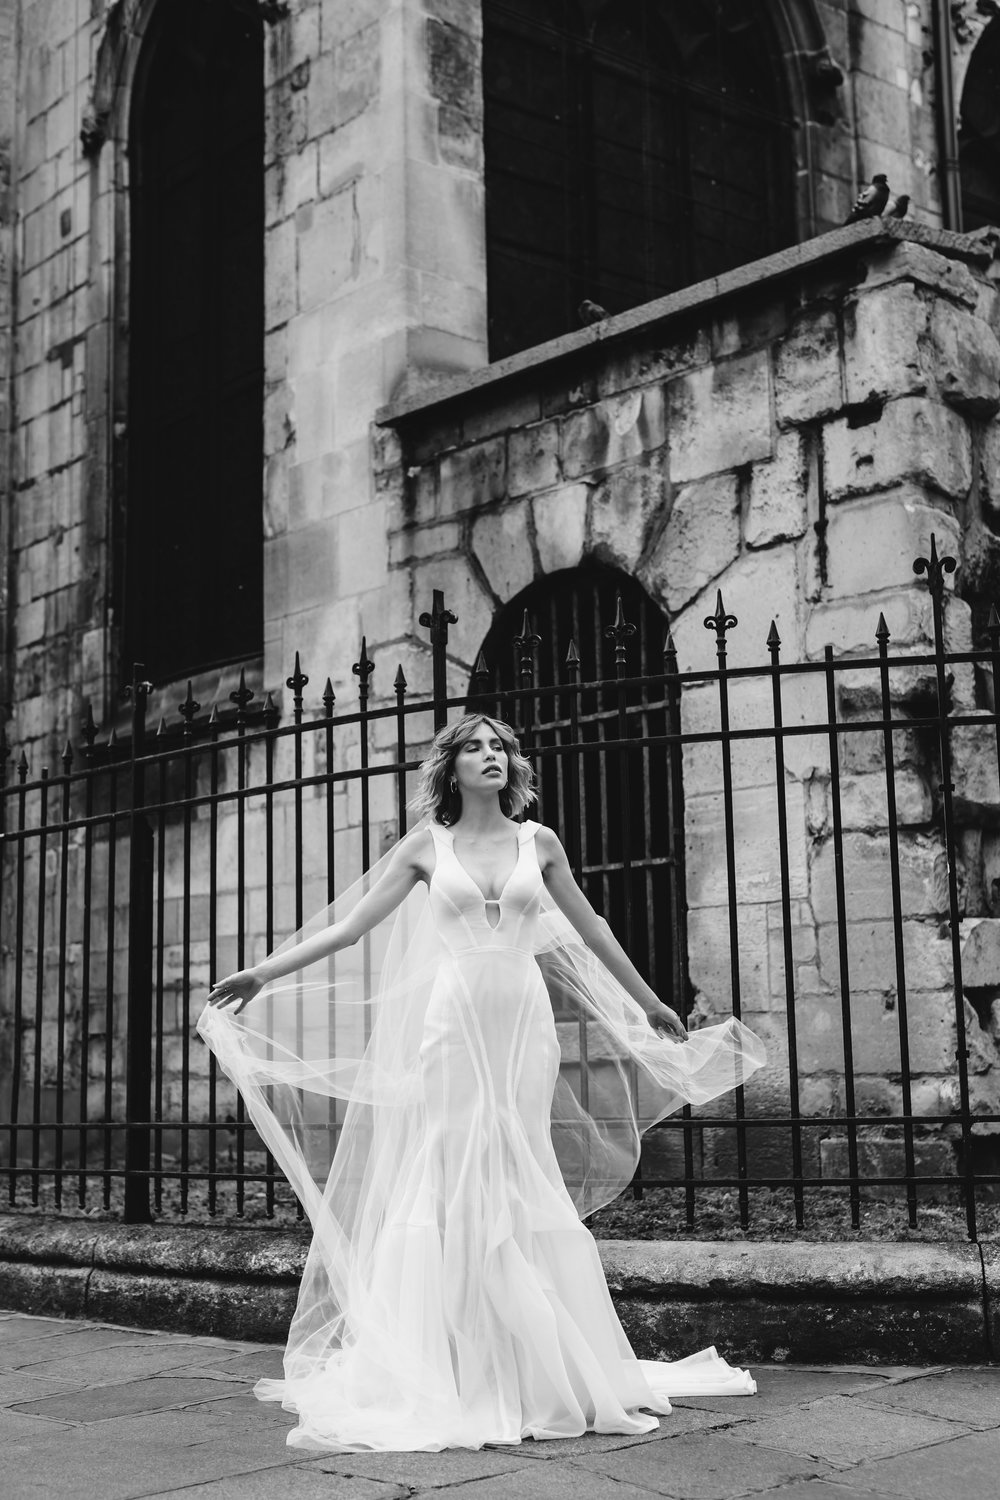 georgia-young-couture-bride-wedding-dressilookbook-paris-ritual-bride-20